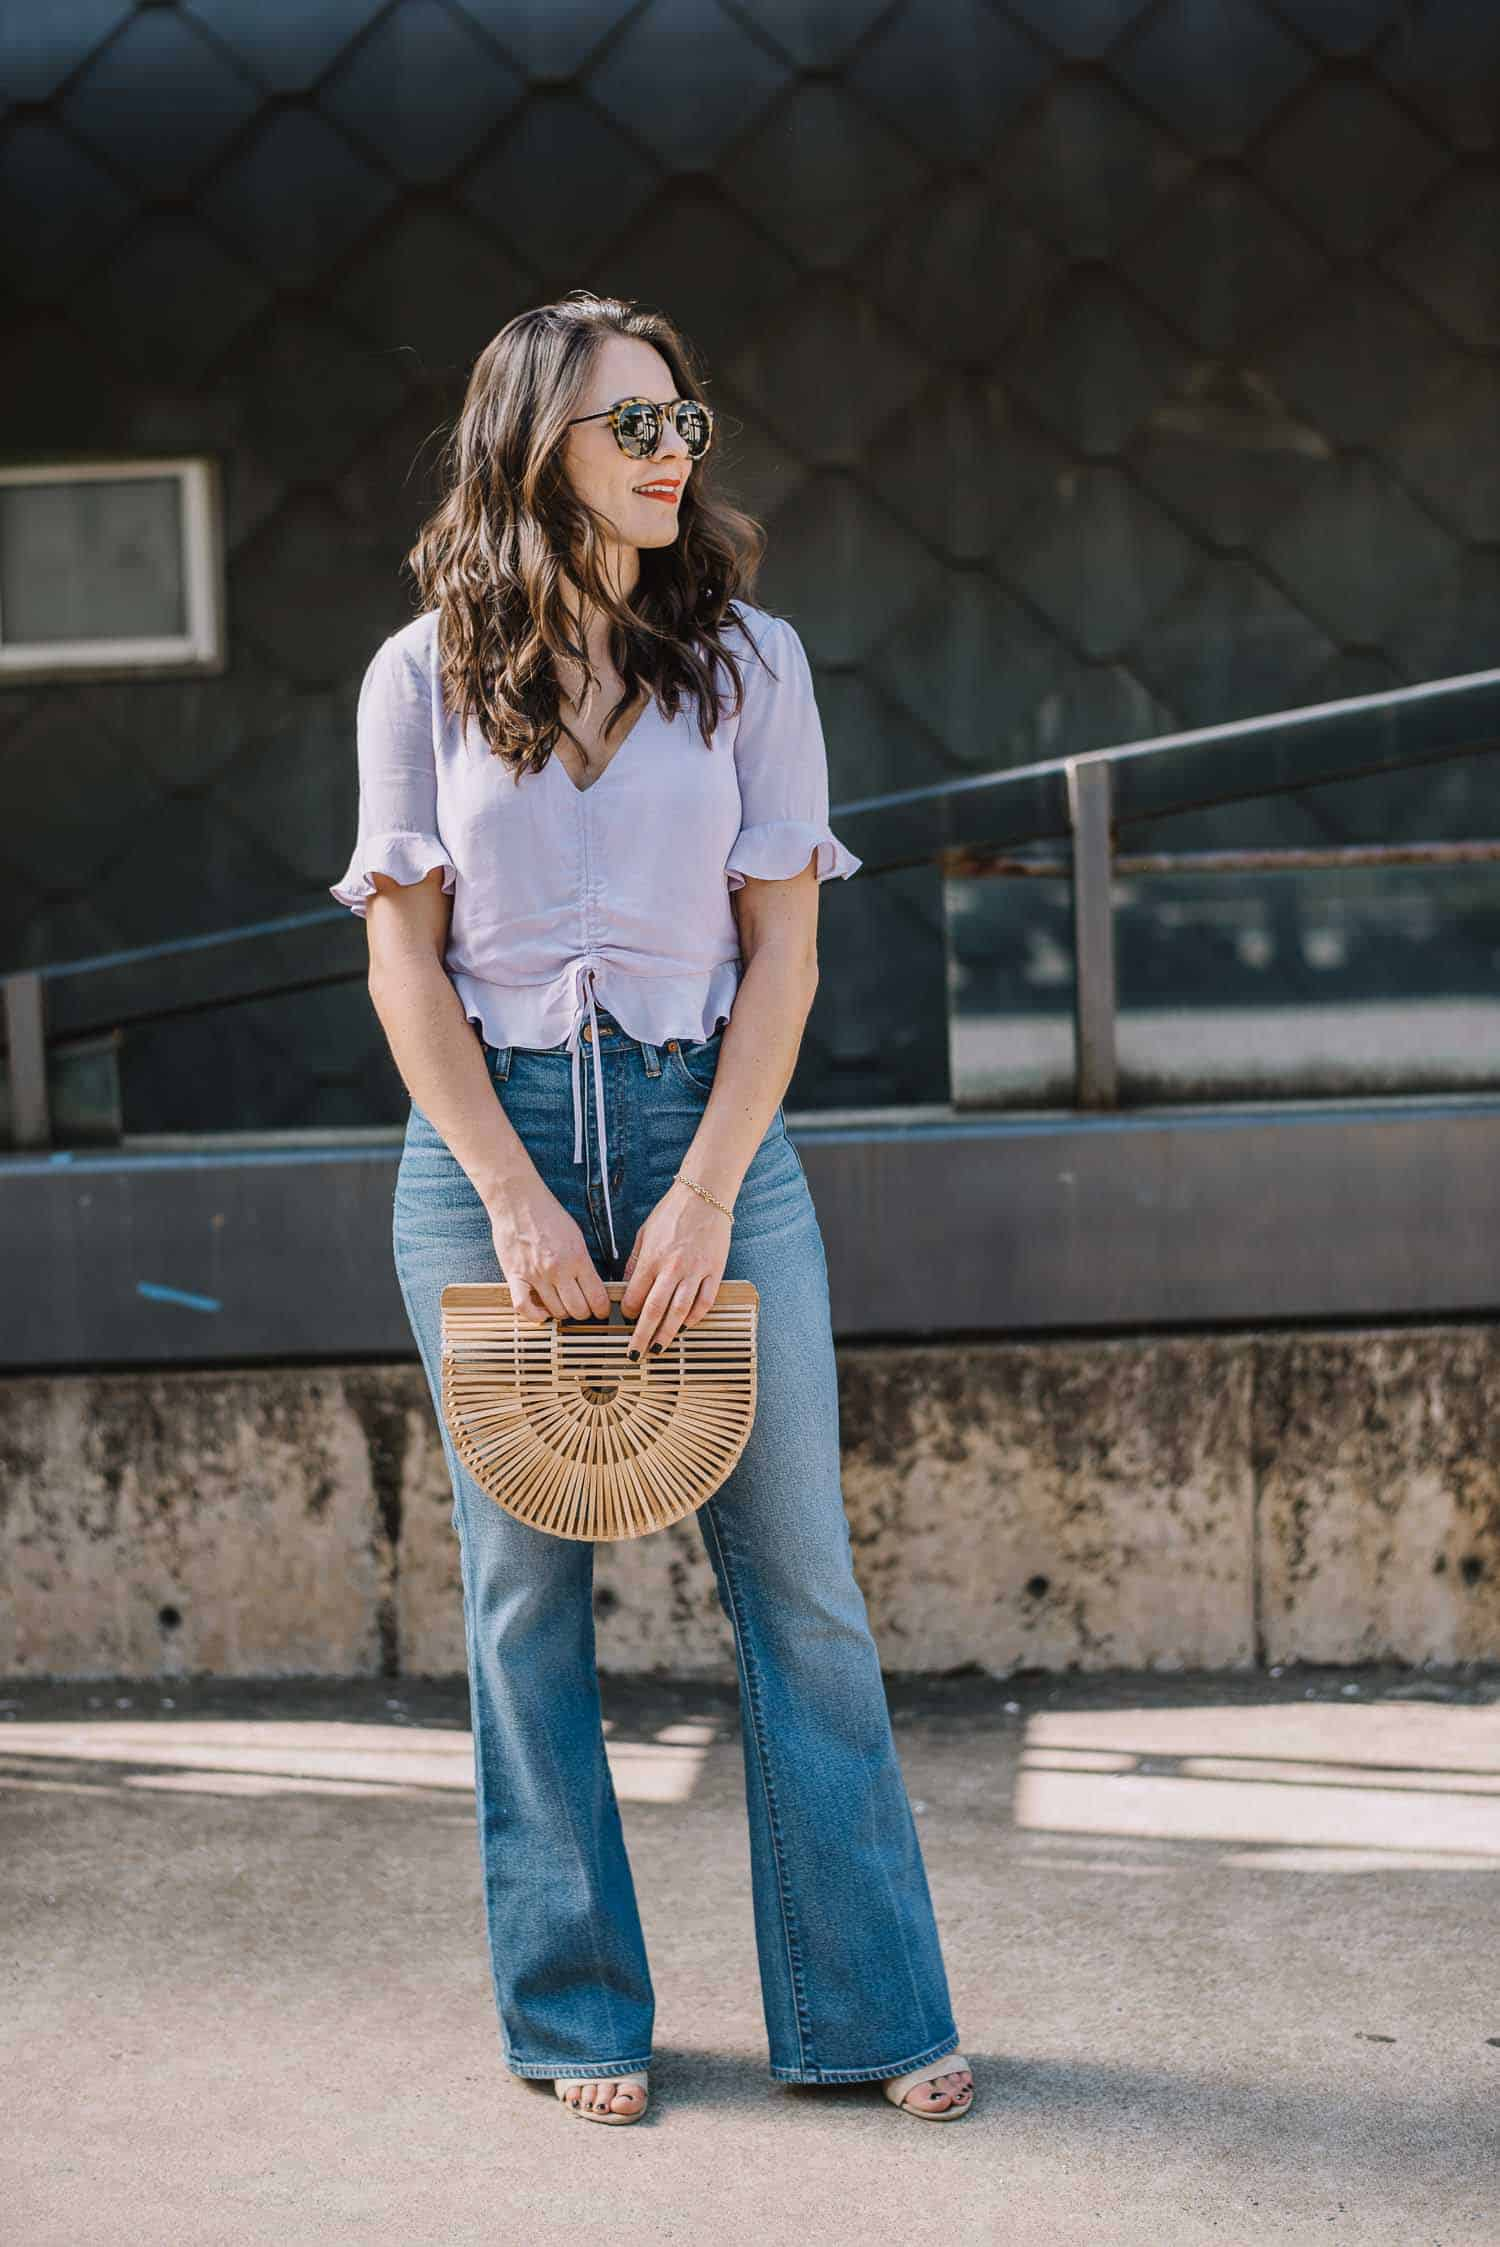 lilac blouse, lavender top, 70s inspired outfit - My Style Vita